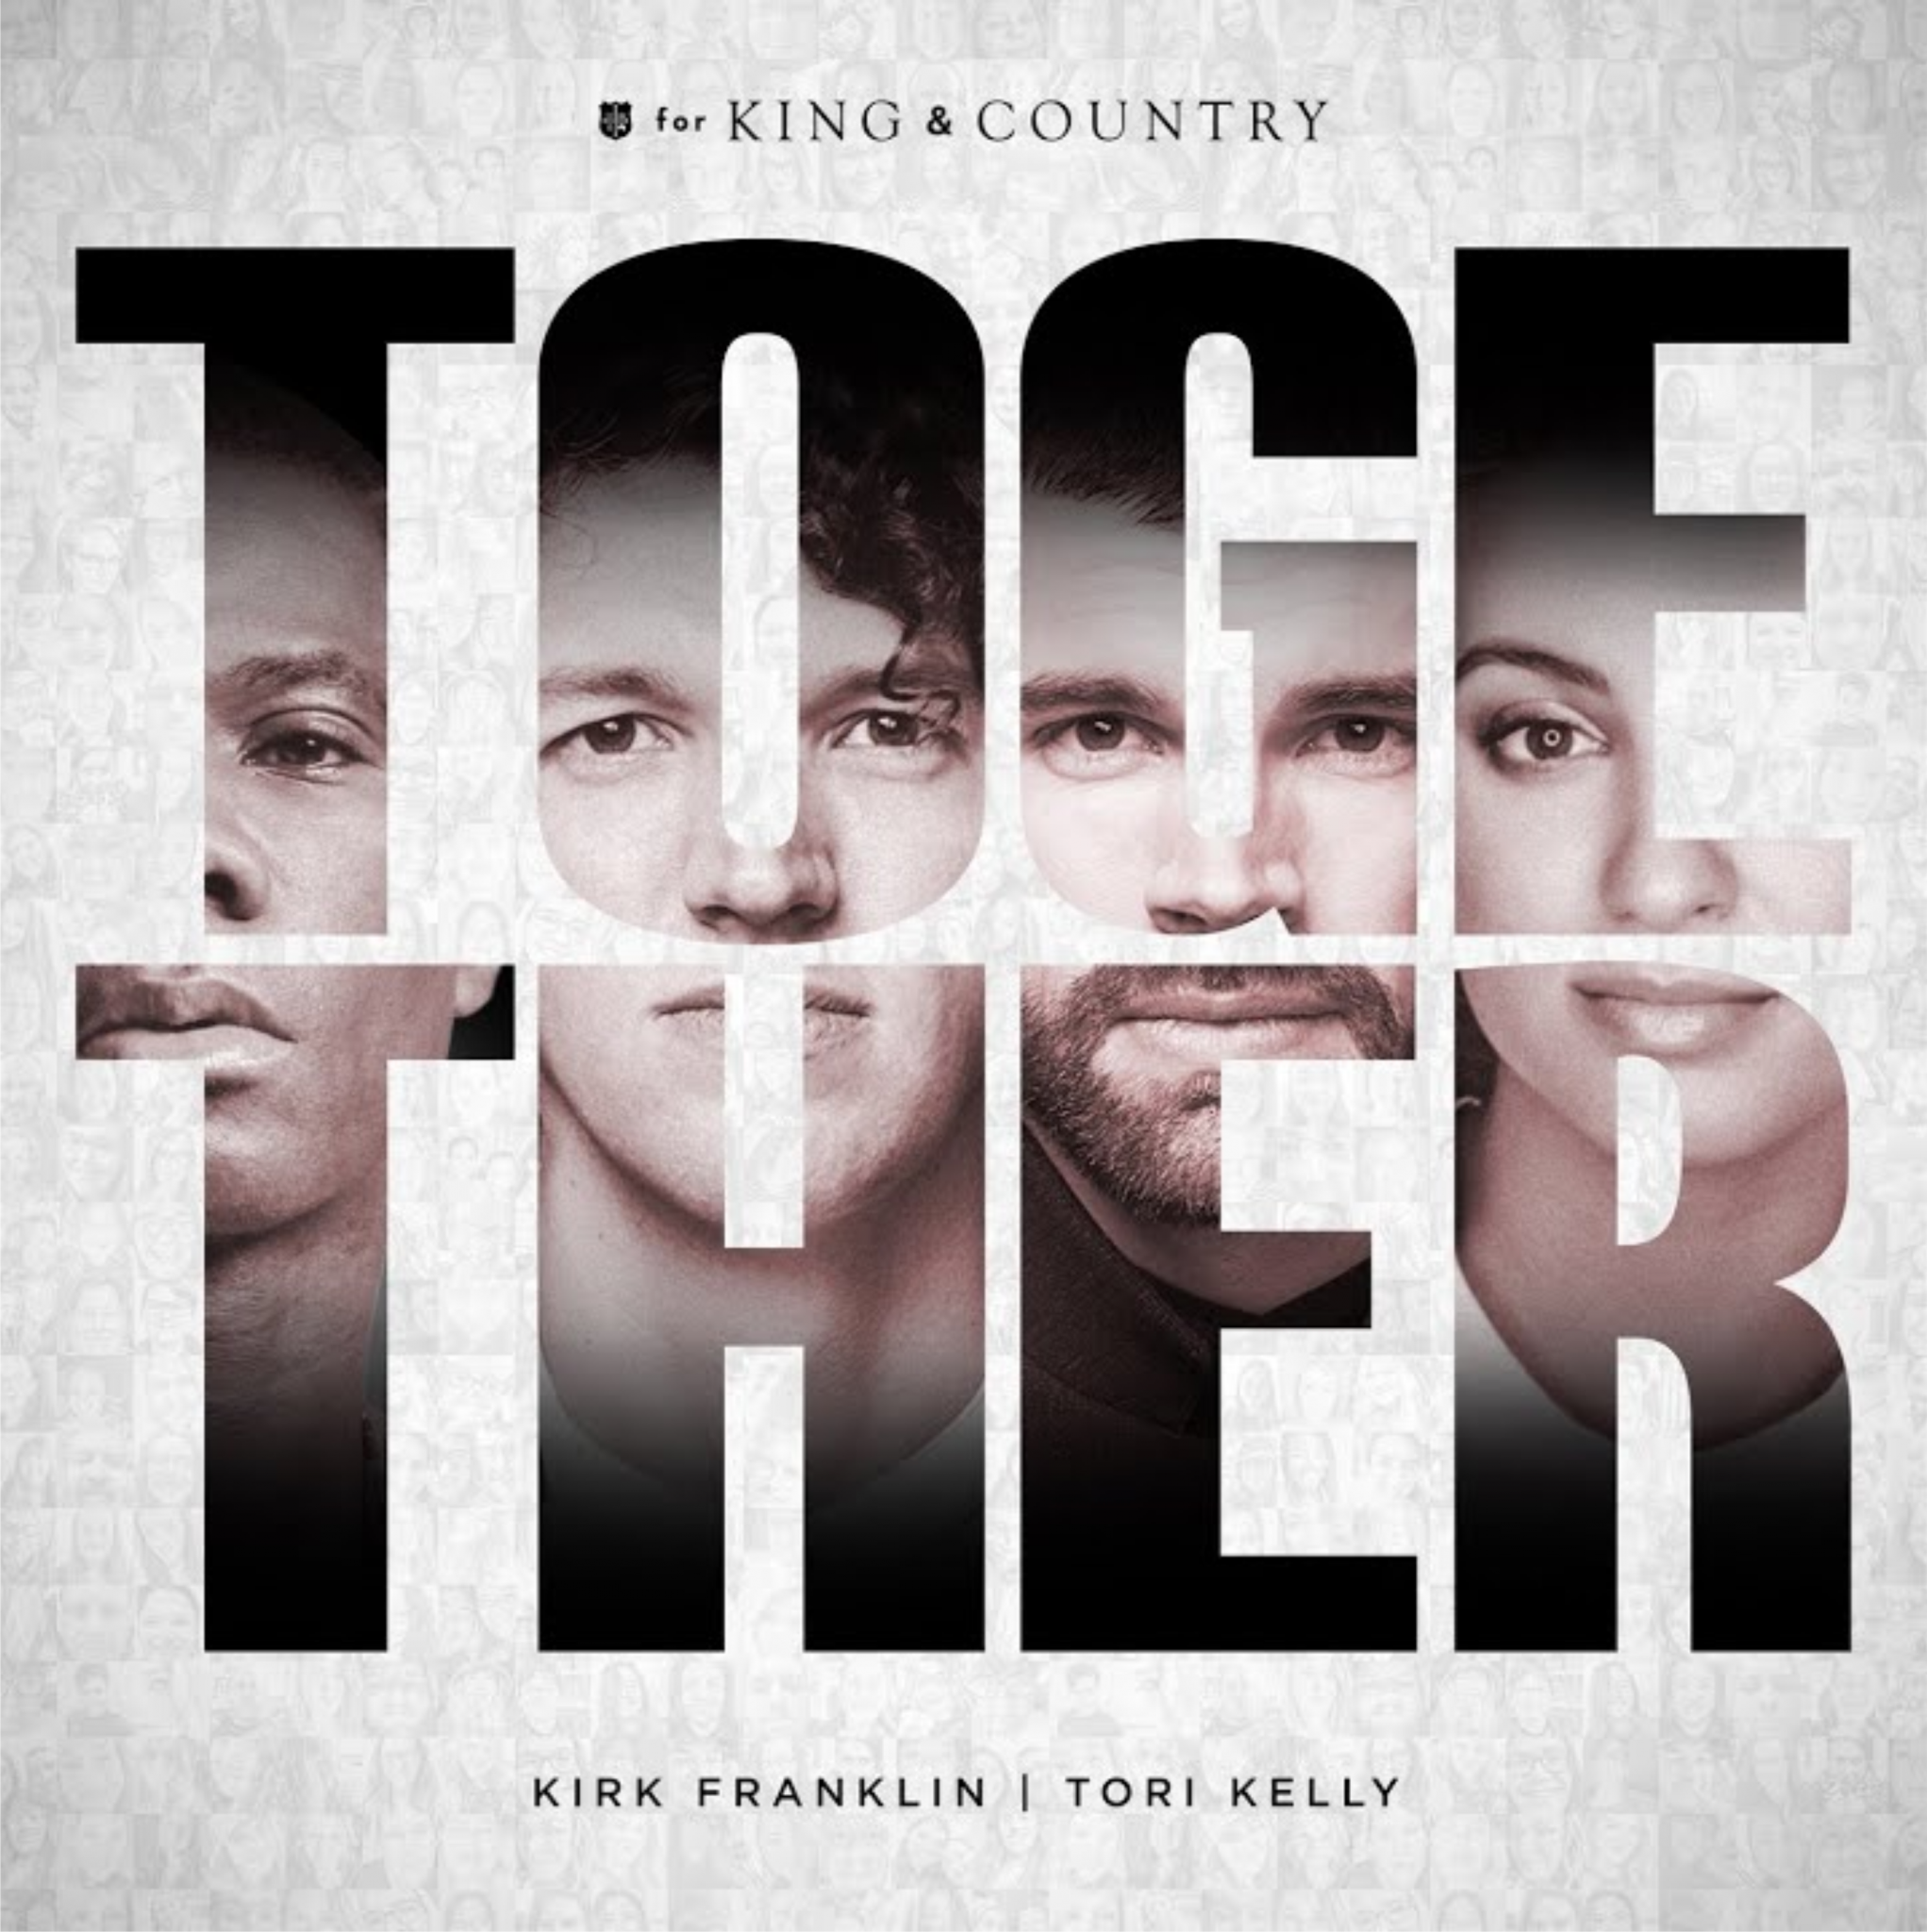 Download MP3 for King & Country ft. Tori Kelly and Kirk Franklin - Together